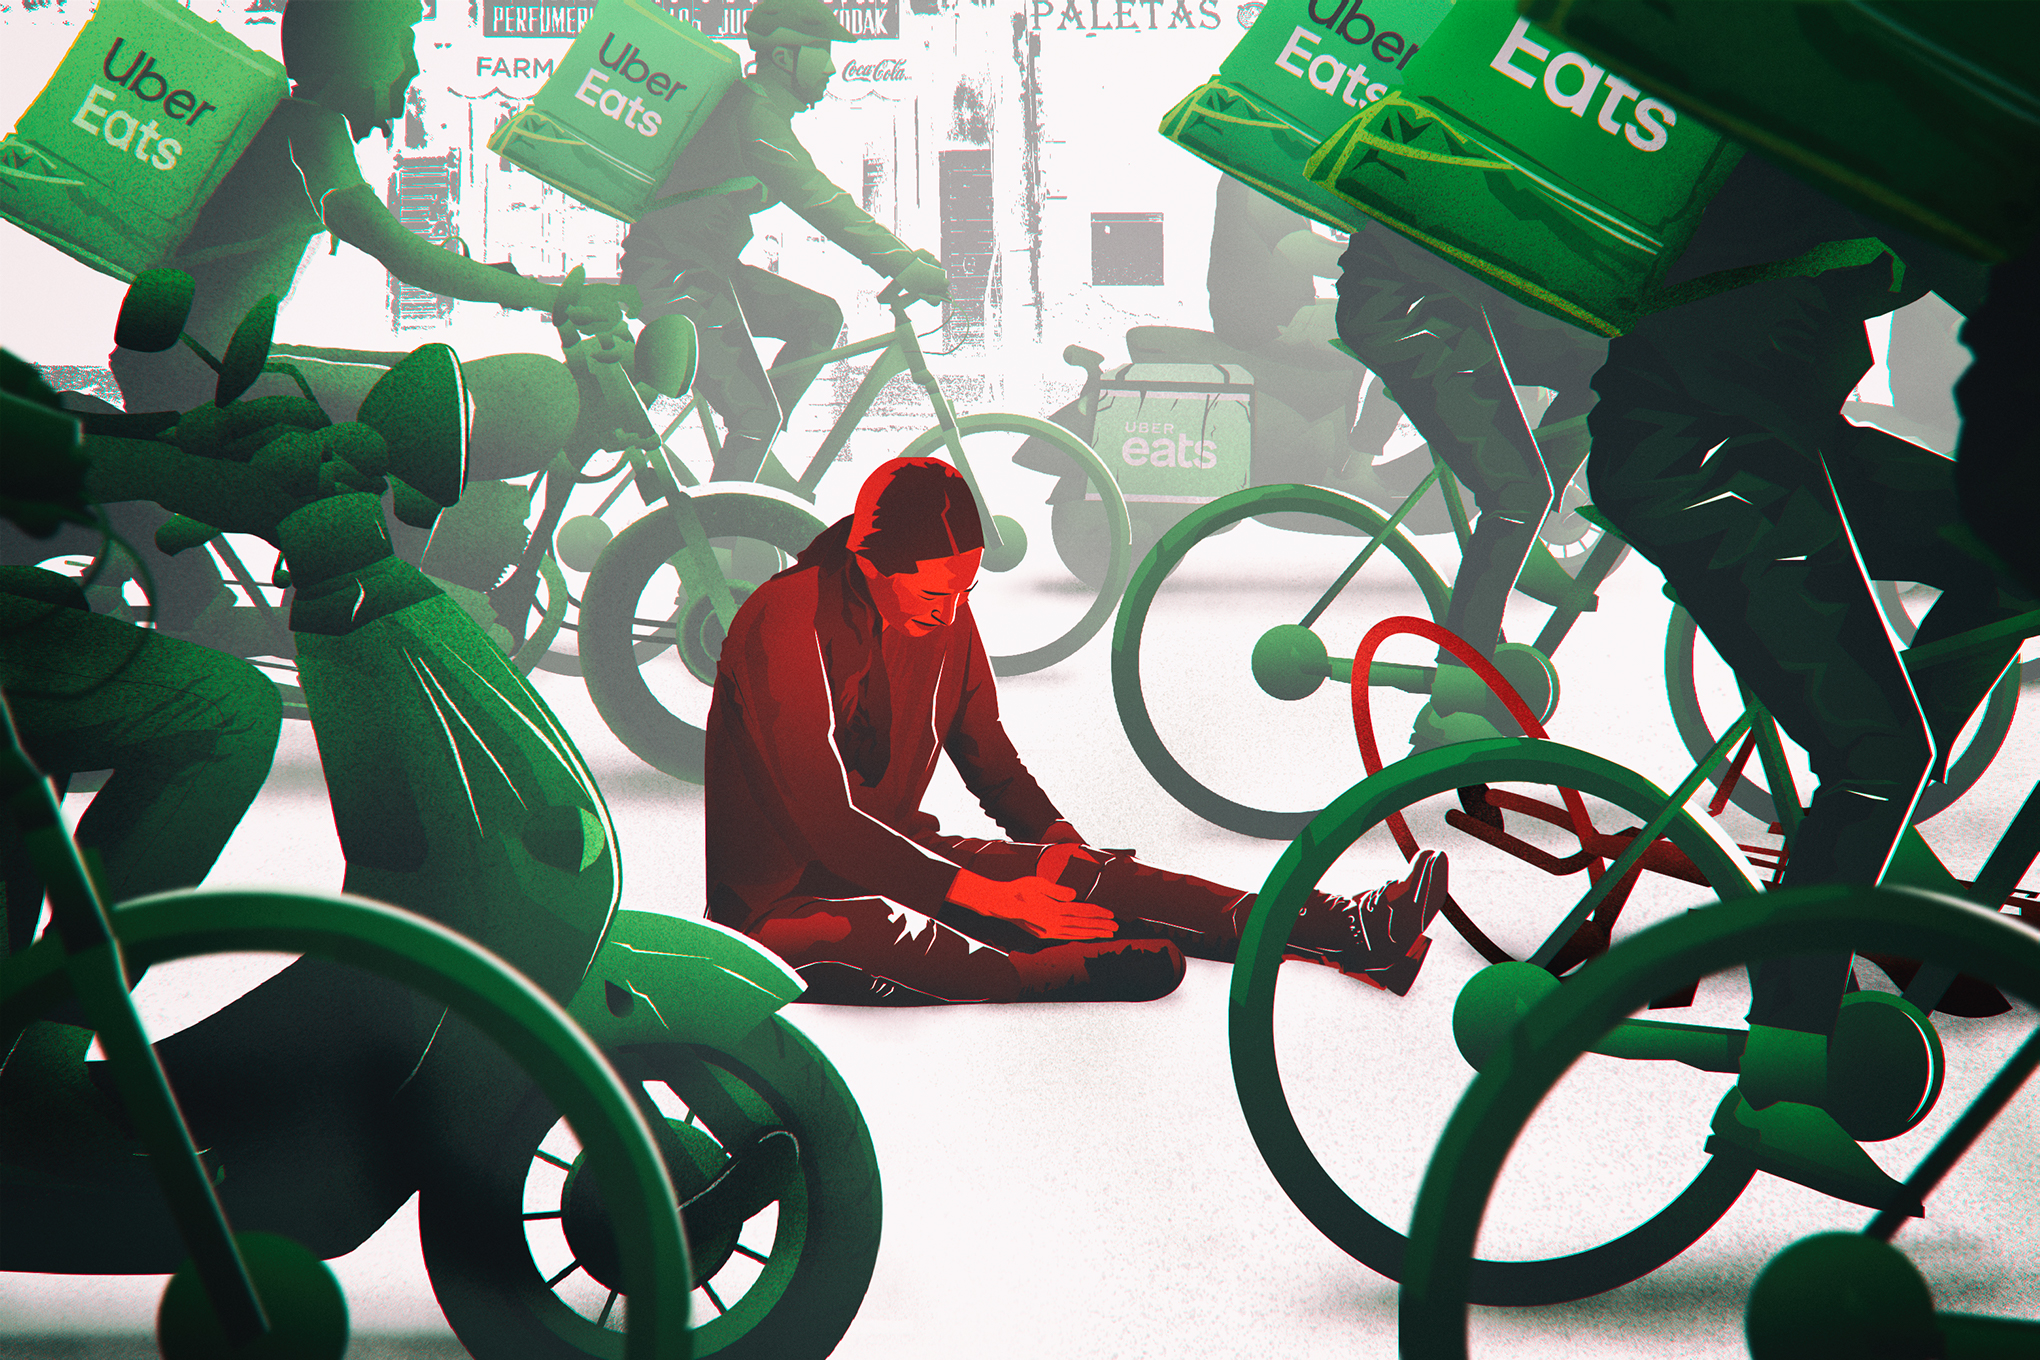 an illustration of a woman in pain and holding her leg on the ground, surrounded by uber eats couriers and people on bicycles